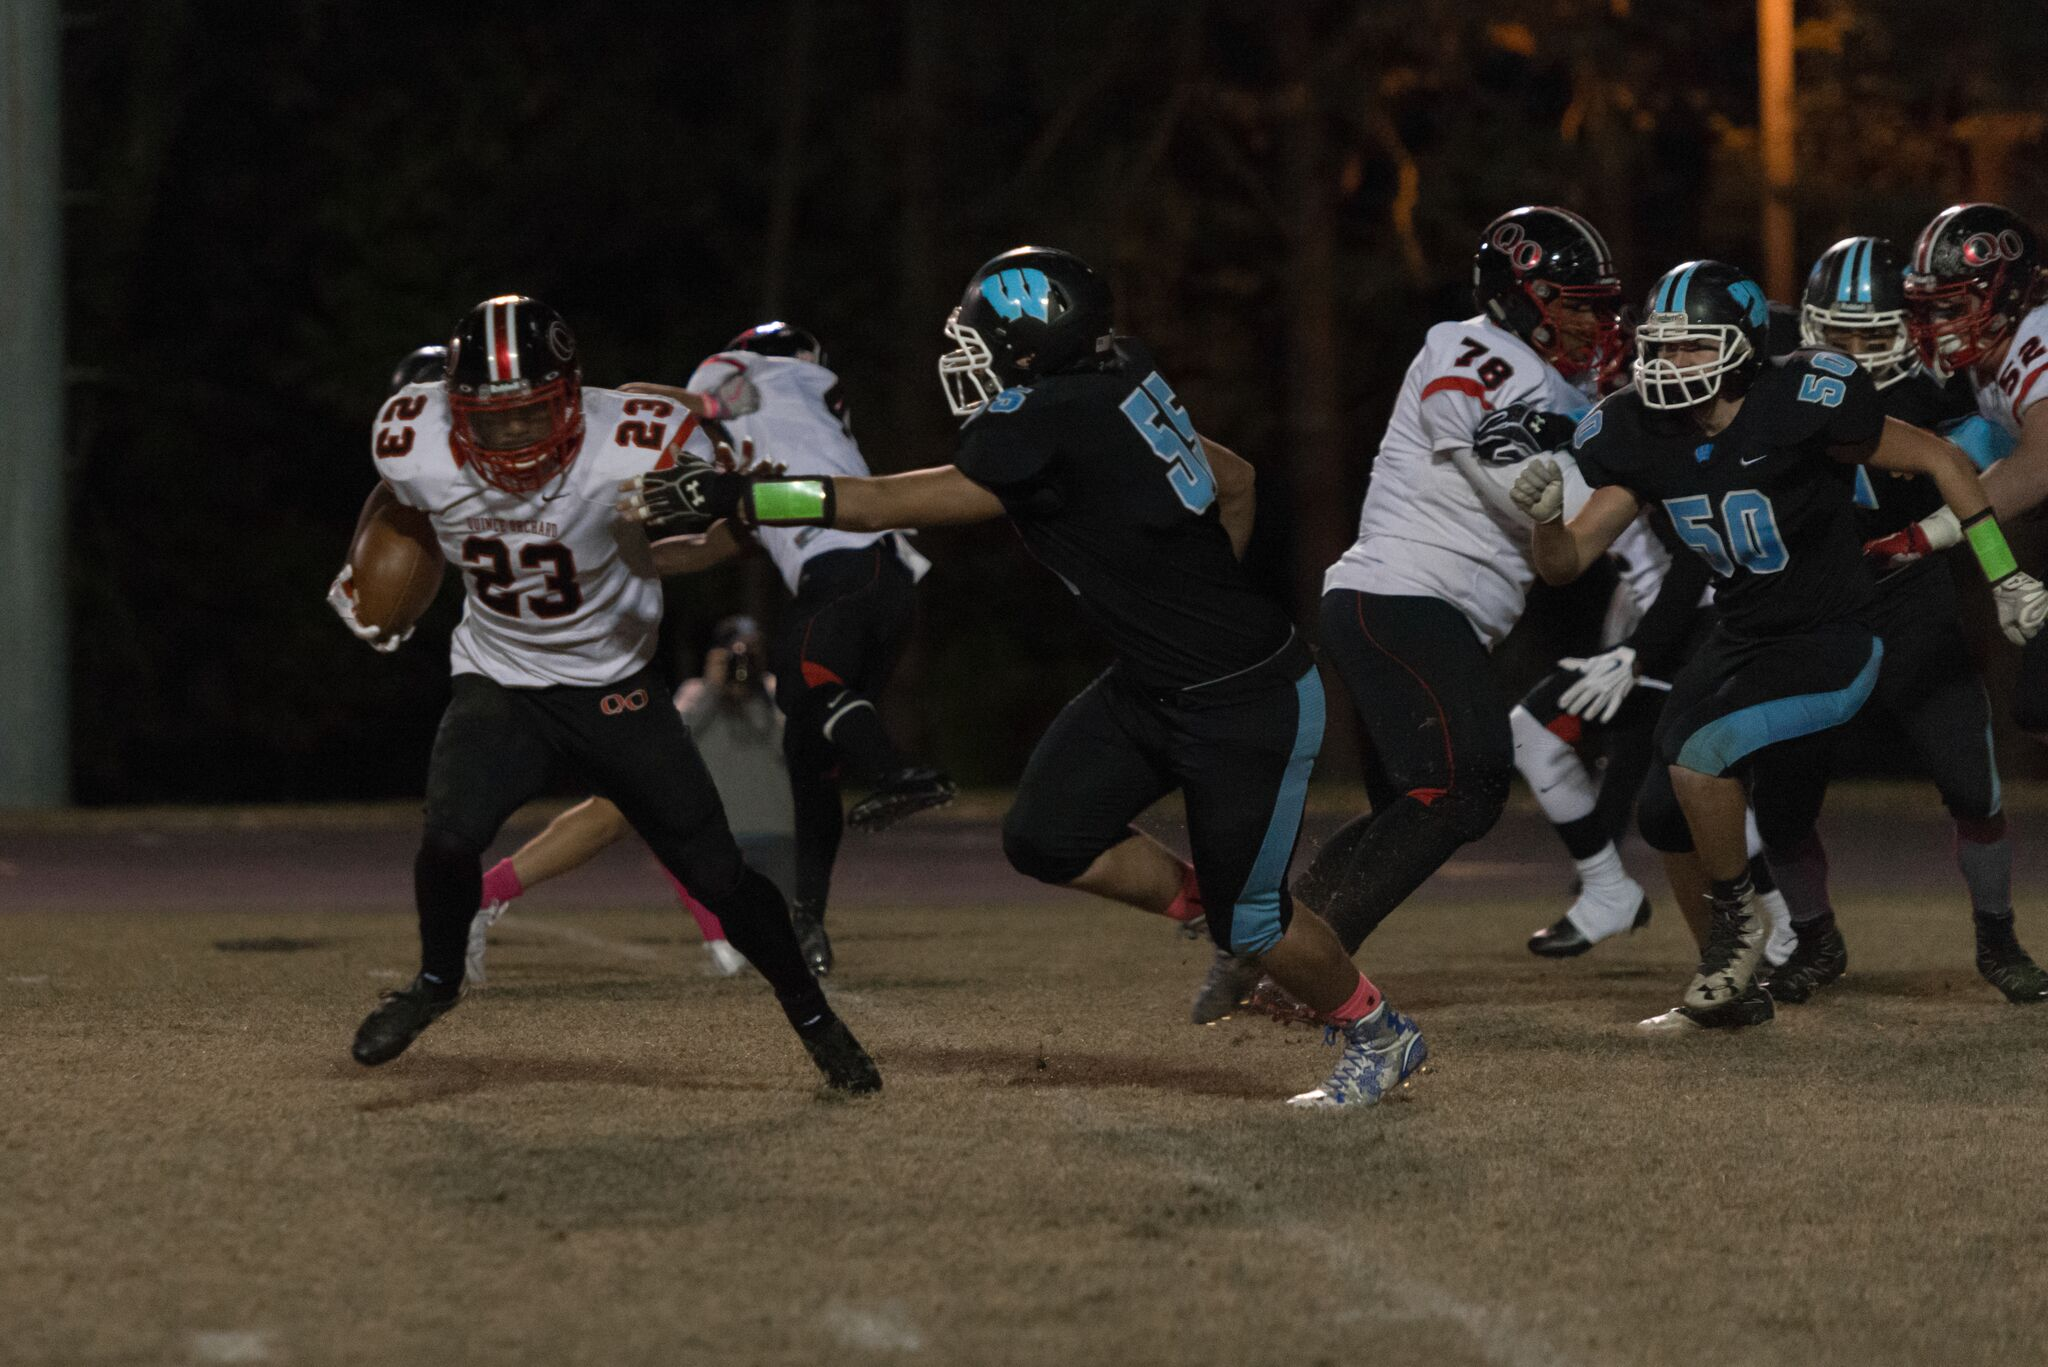 Defensive lineman Dawson Mackay looks to take down QO's running back in the backfield, with linebacker Ben Wilson trailing in pursuit. Photo by Jefferson Luo.